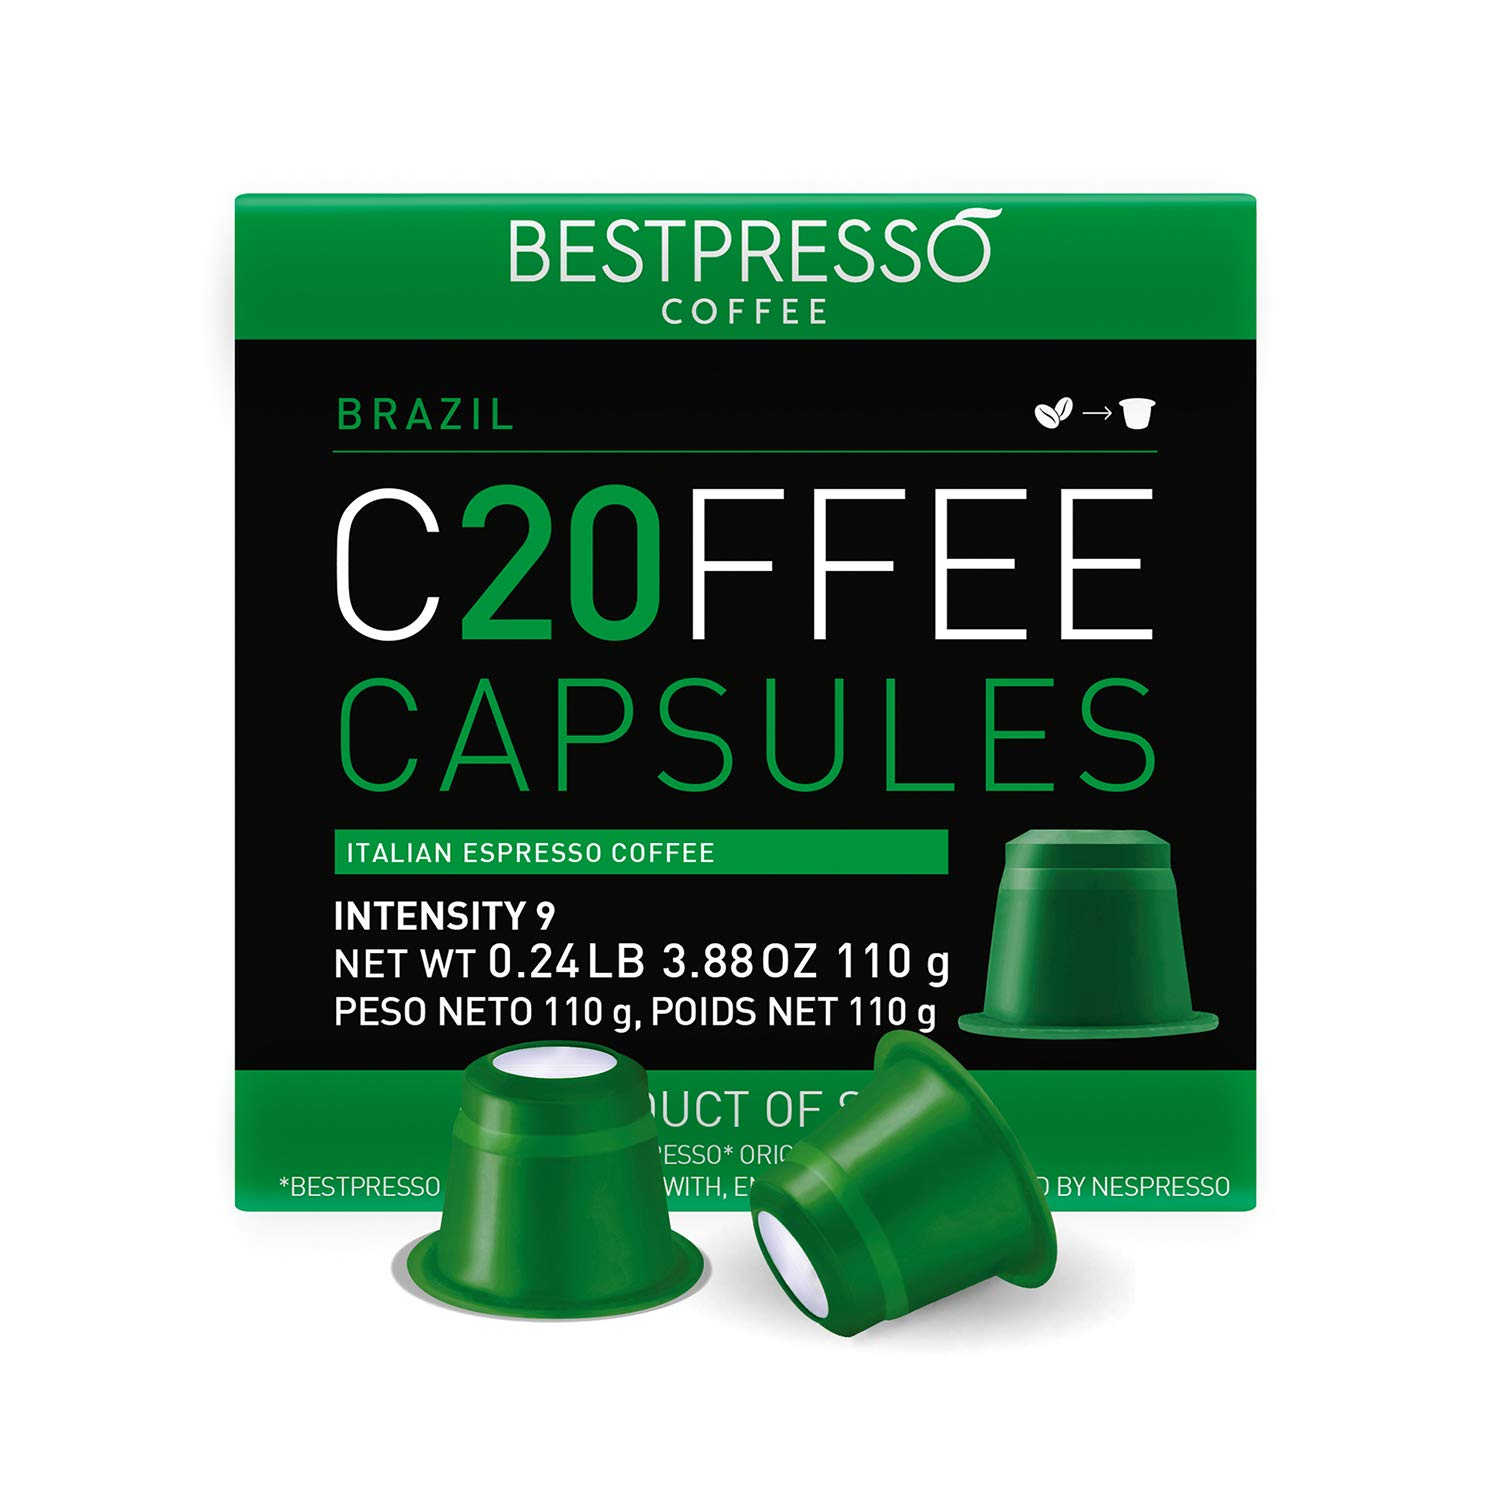 Bestpresso Coffee for Nespresso Original Machine 120 pods Genuine Espresso Brazil Blend Pods Compatible with Nespresso Original